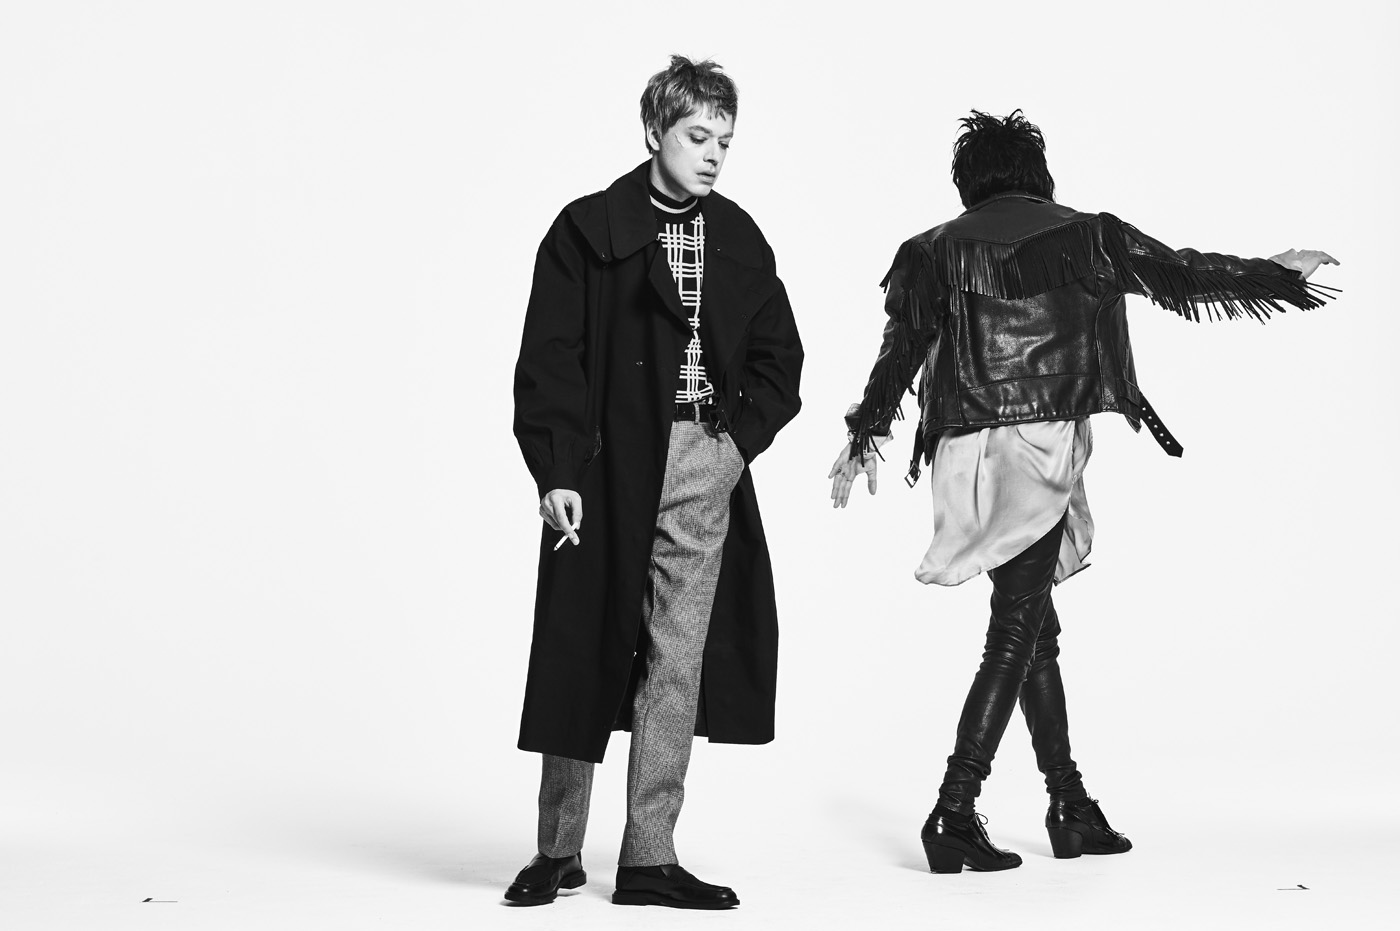 From left, Hooky wears vintage coat from Early Halloween, New York. Sweater, trousers, and shoes by Fendi. Orion wears vintage jacket from What Goes Around Comes Around, New York. Shirt by Ann Demeulemeester. Trousers, vintage Vivienne Westwood boots, and earring, stylist's own.